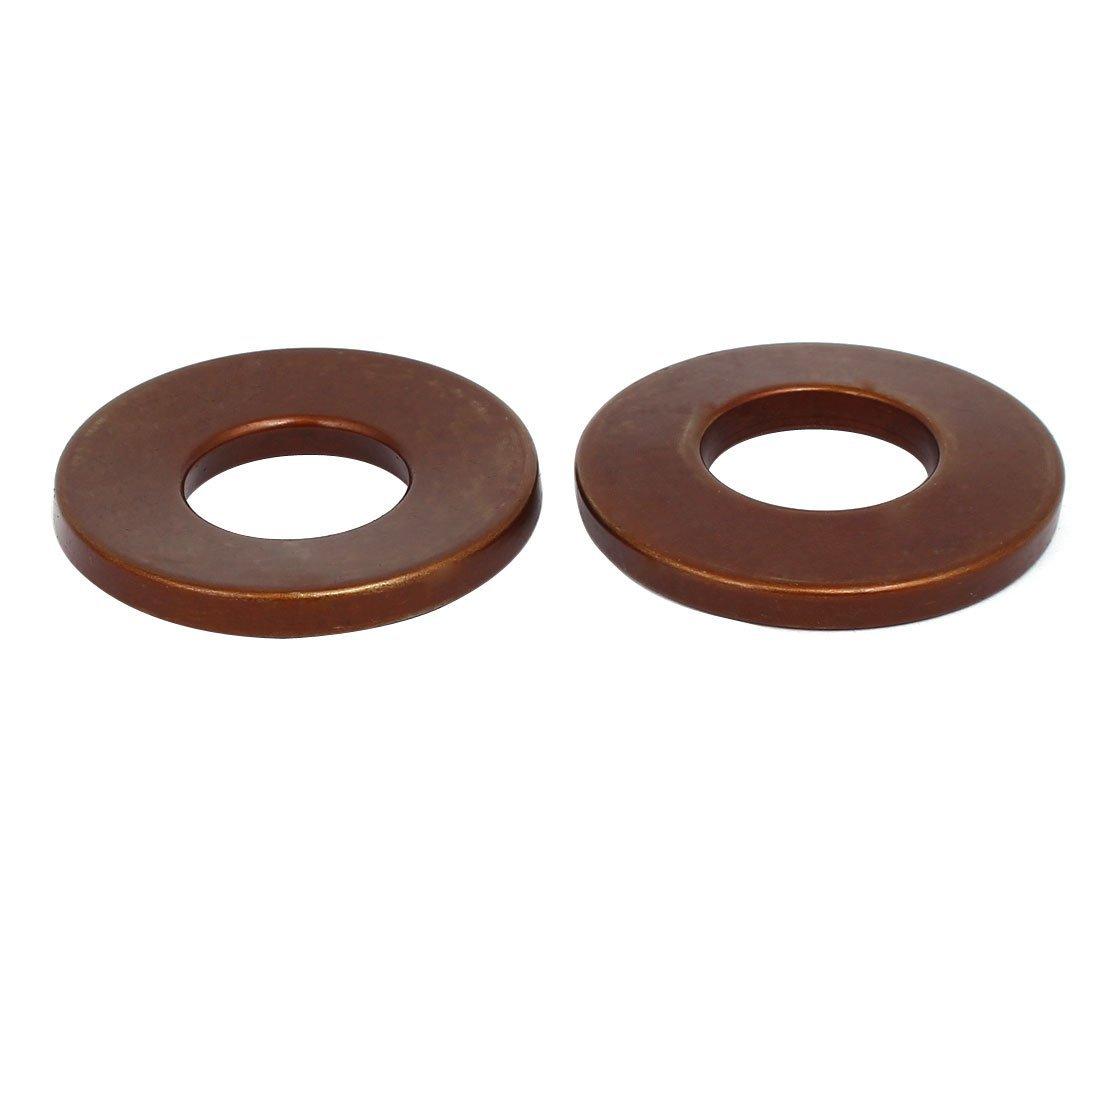 uxcell 56mm Outer Dia 25mm Inner Dia 6mm Thickness Metric Belleville Spring Washer 2pcs